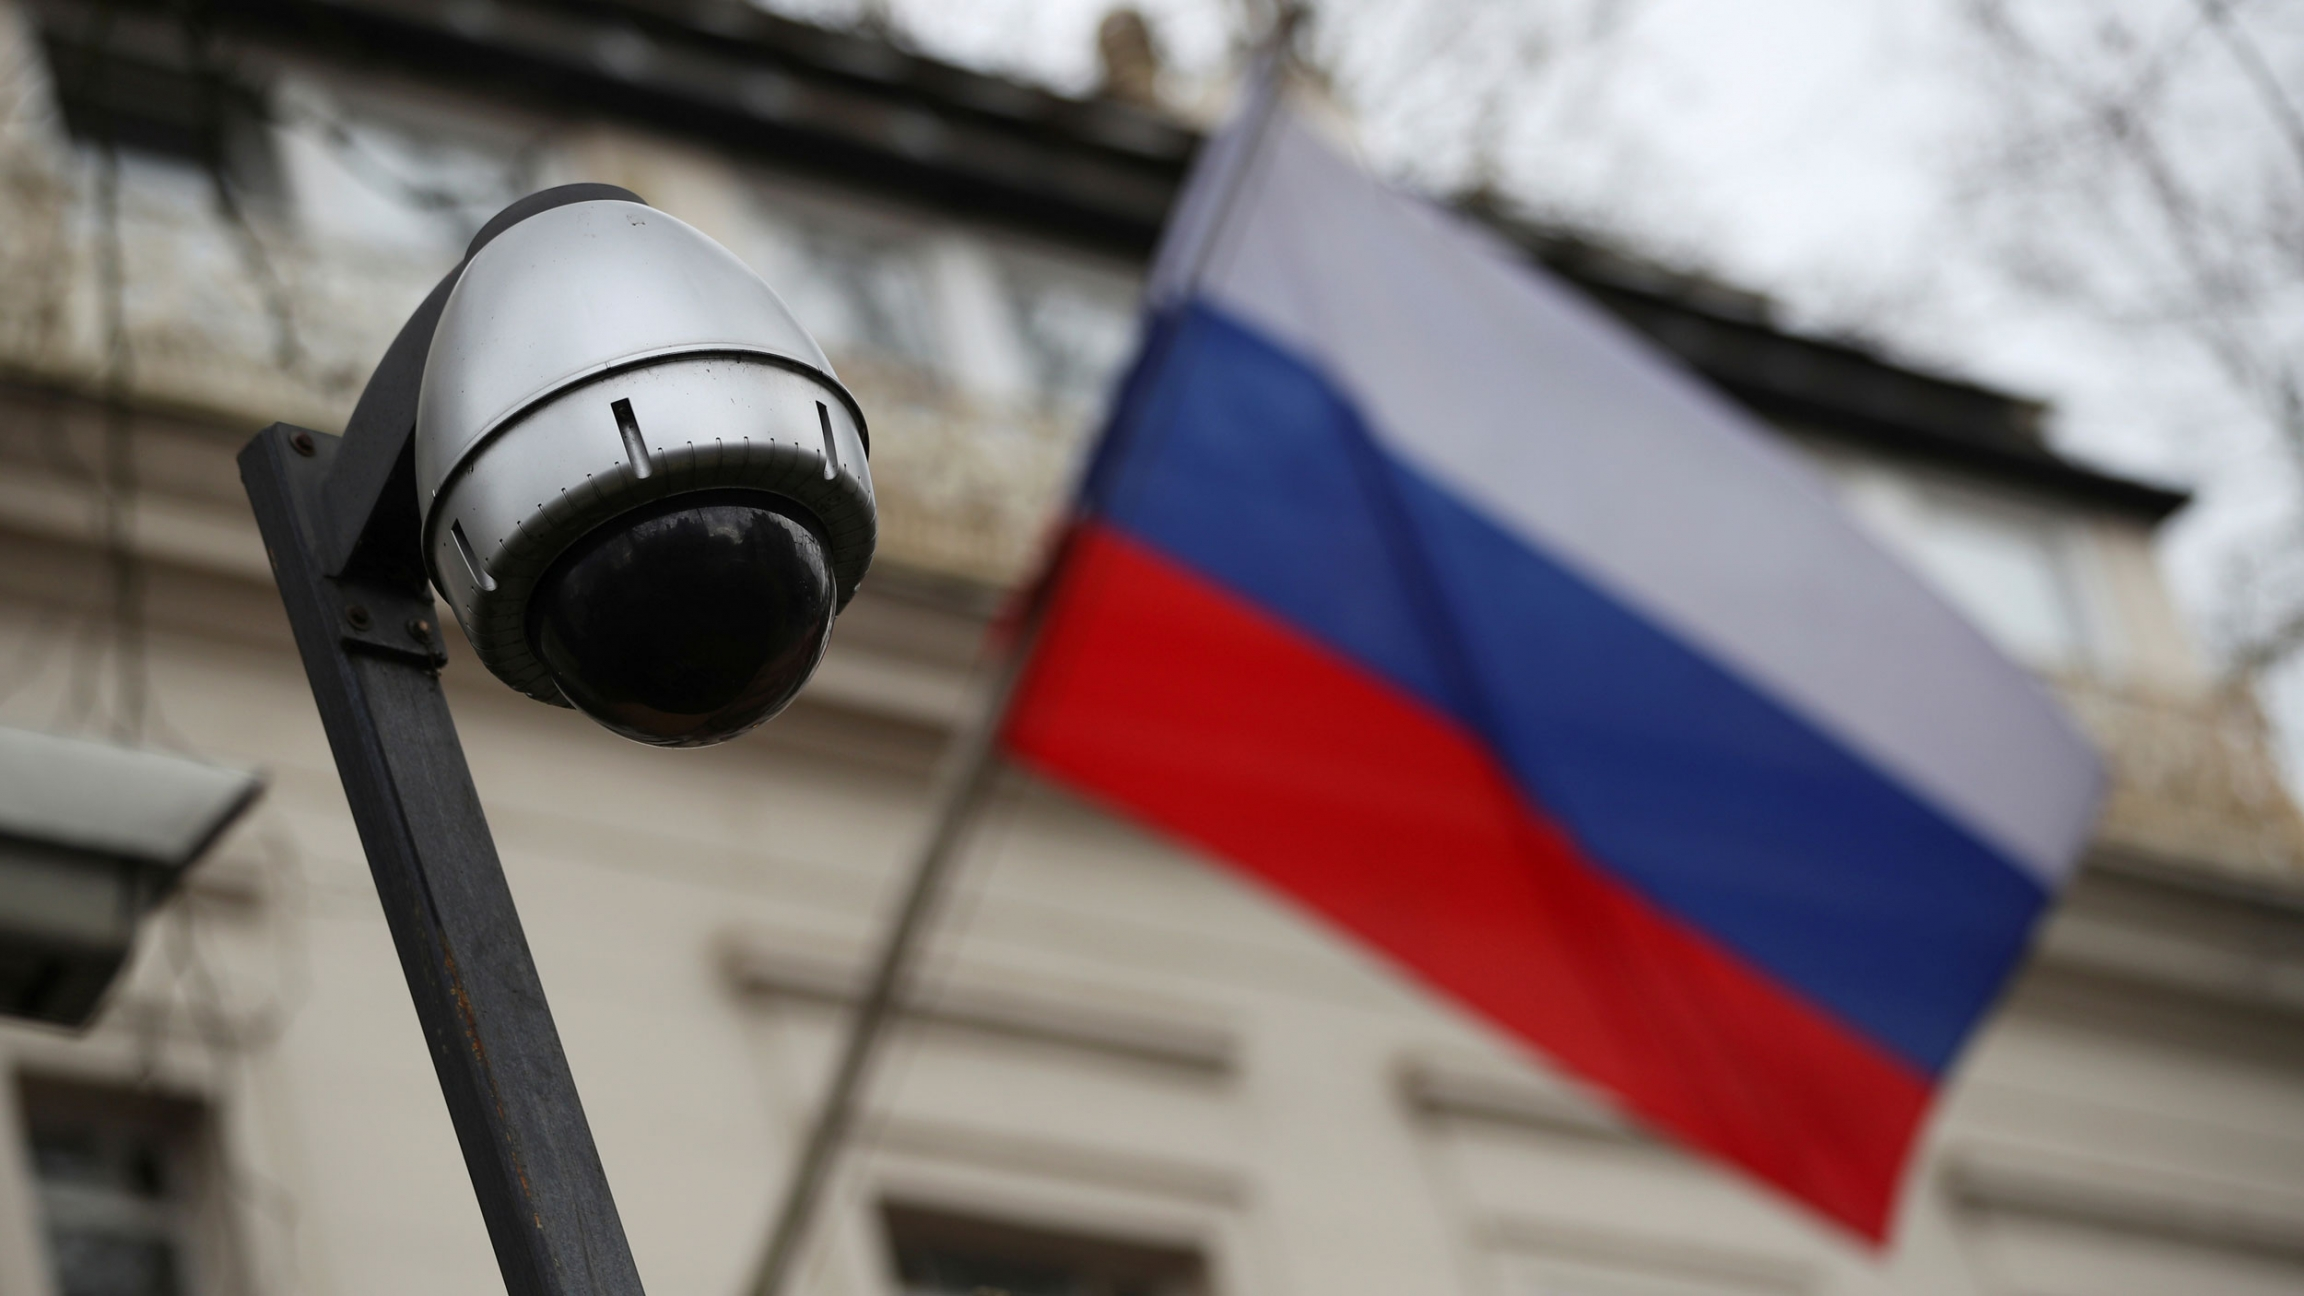 The dark lens of a security camera is shown with a Russian Federation flag in soft focus in the background.